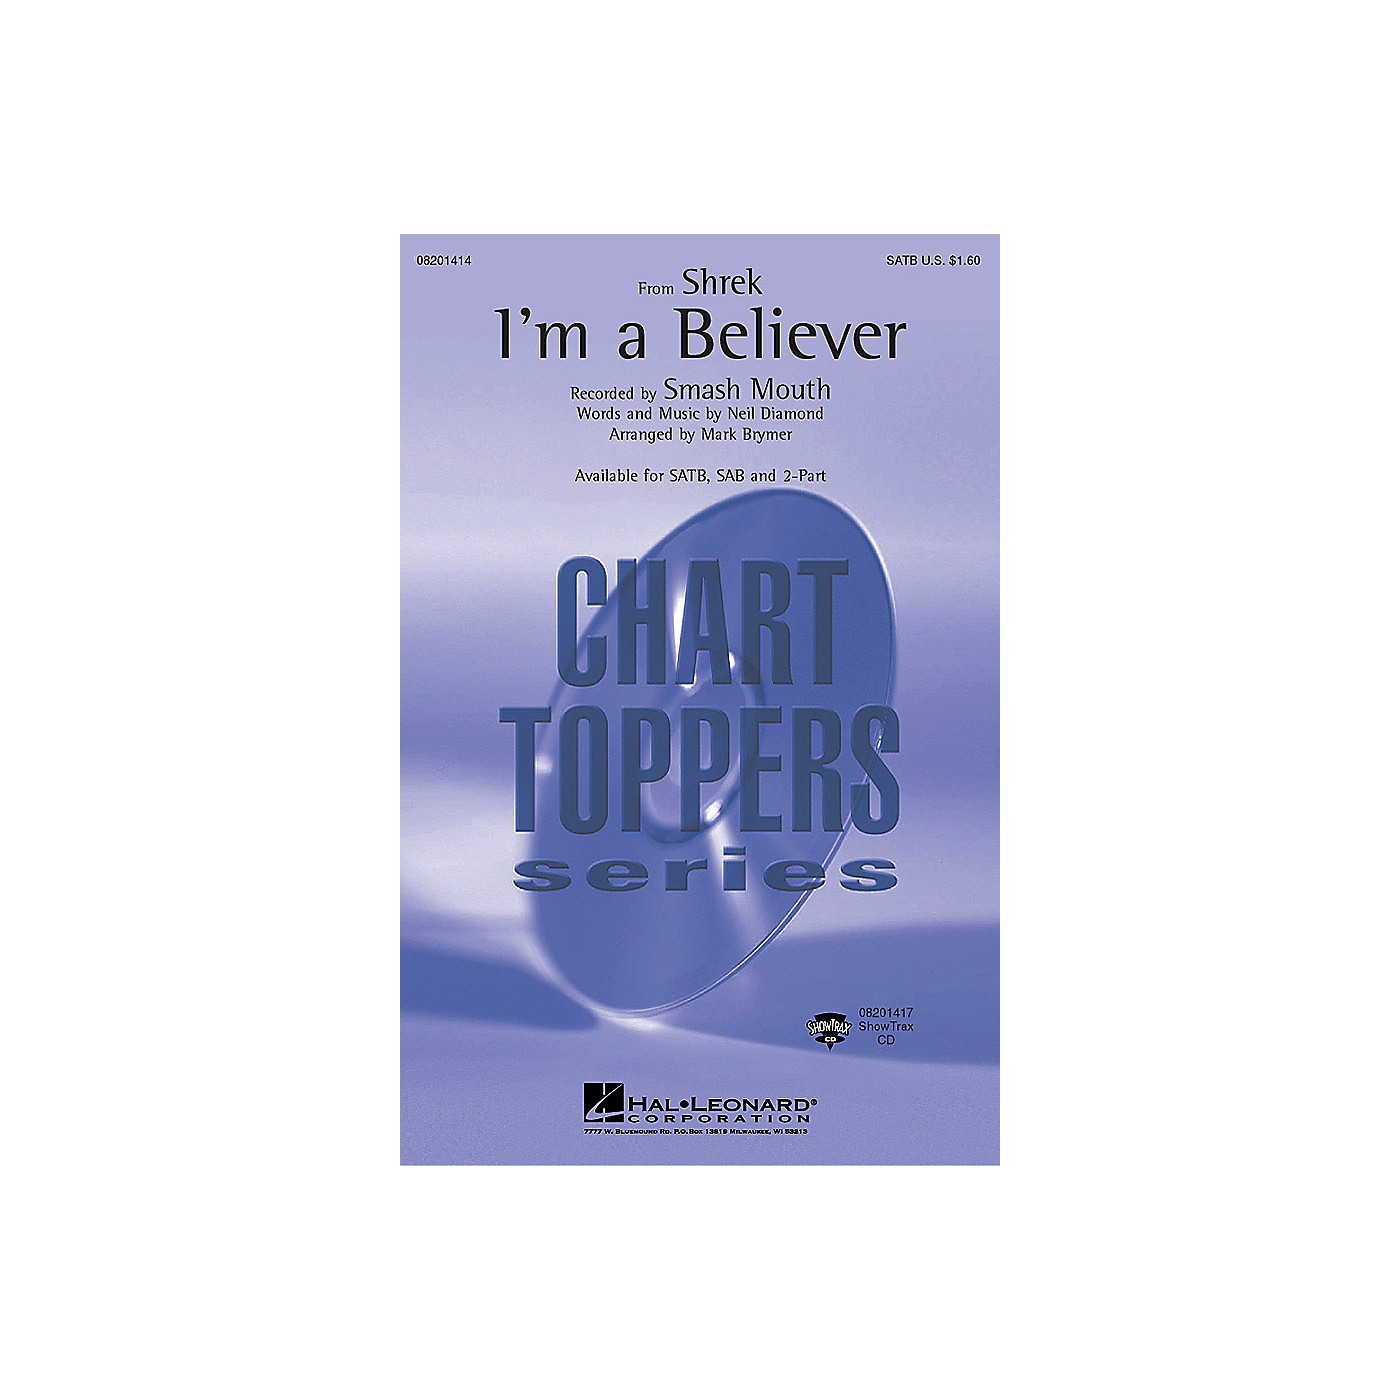 Hal Leonard I'm a Believer (from Shrek) (SATB) SATB by Smash Mouth arranged by Mark Brymer thumbnail